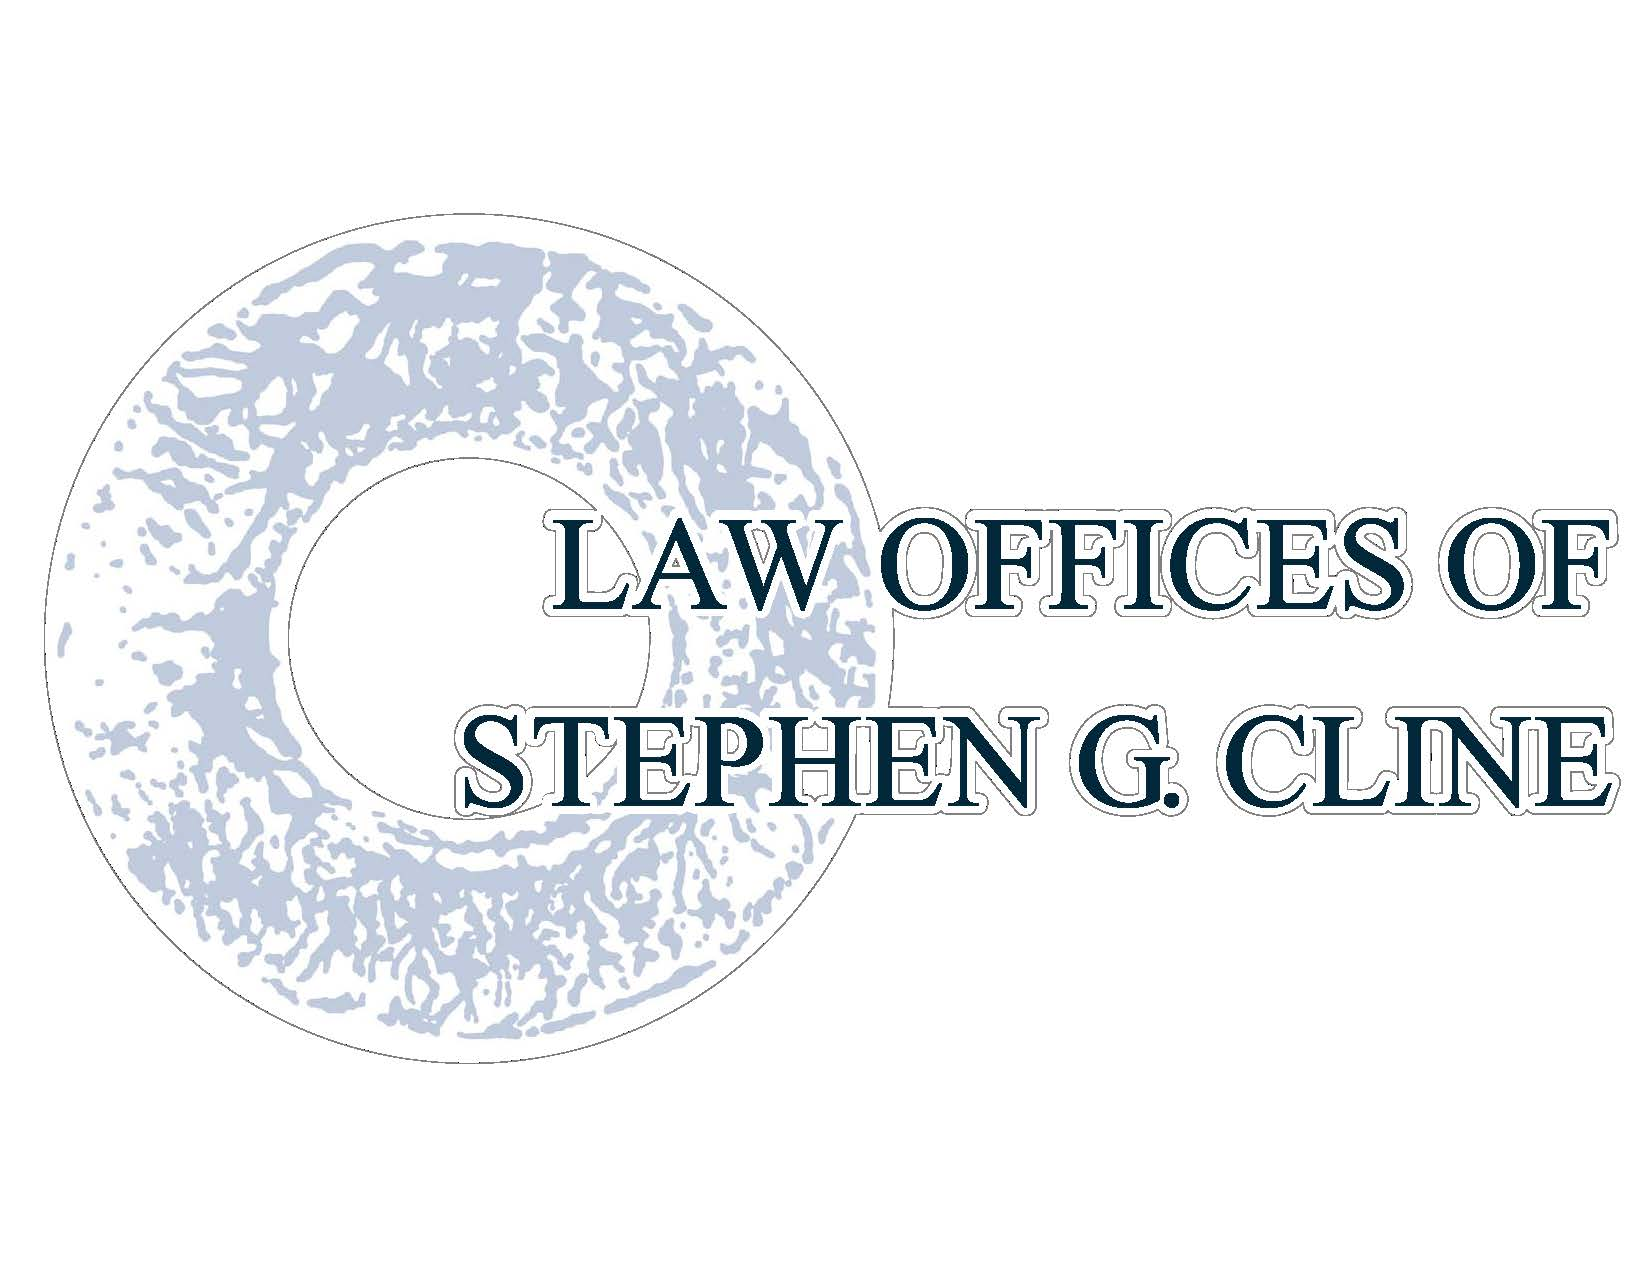 The Law Offices of Stephen G. Cline logo